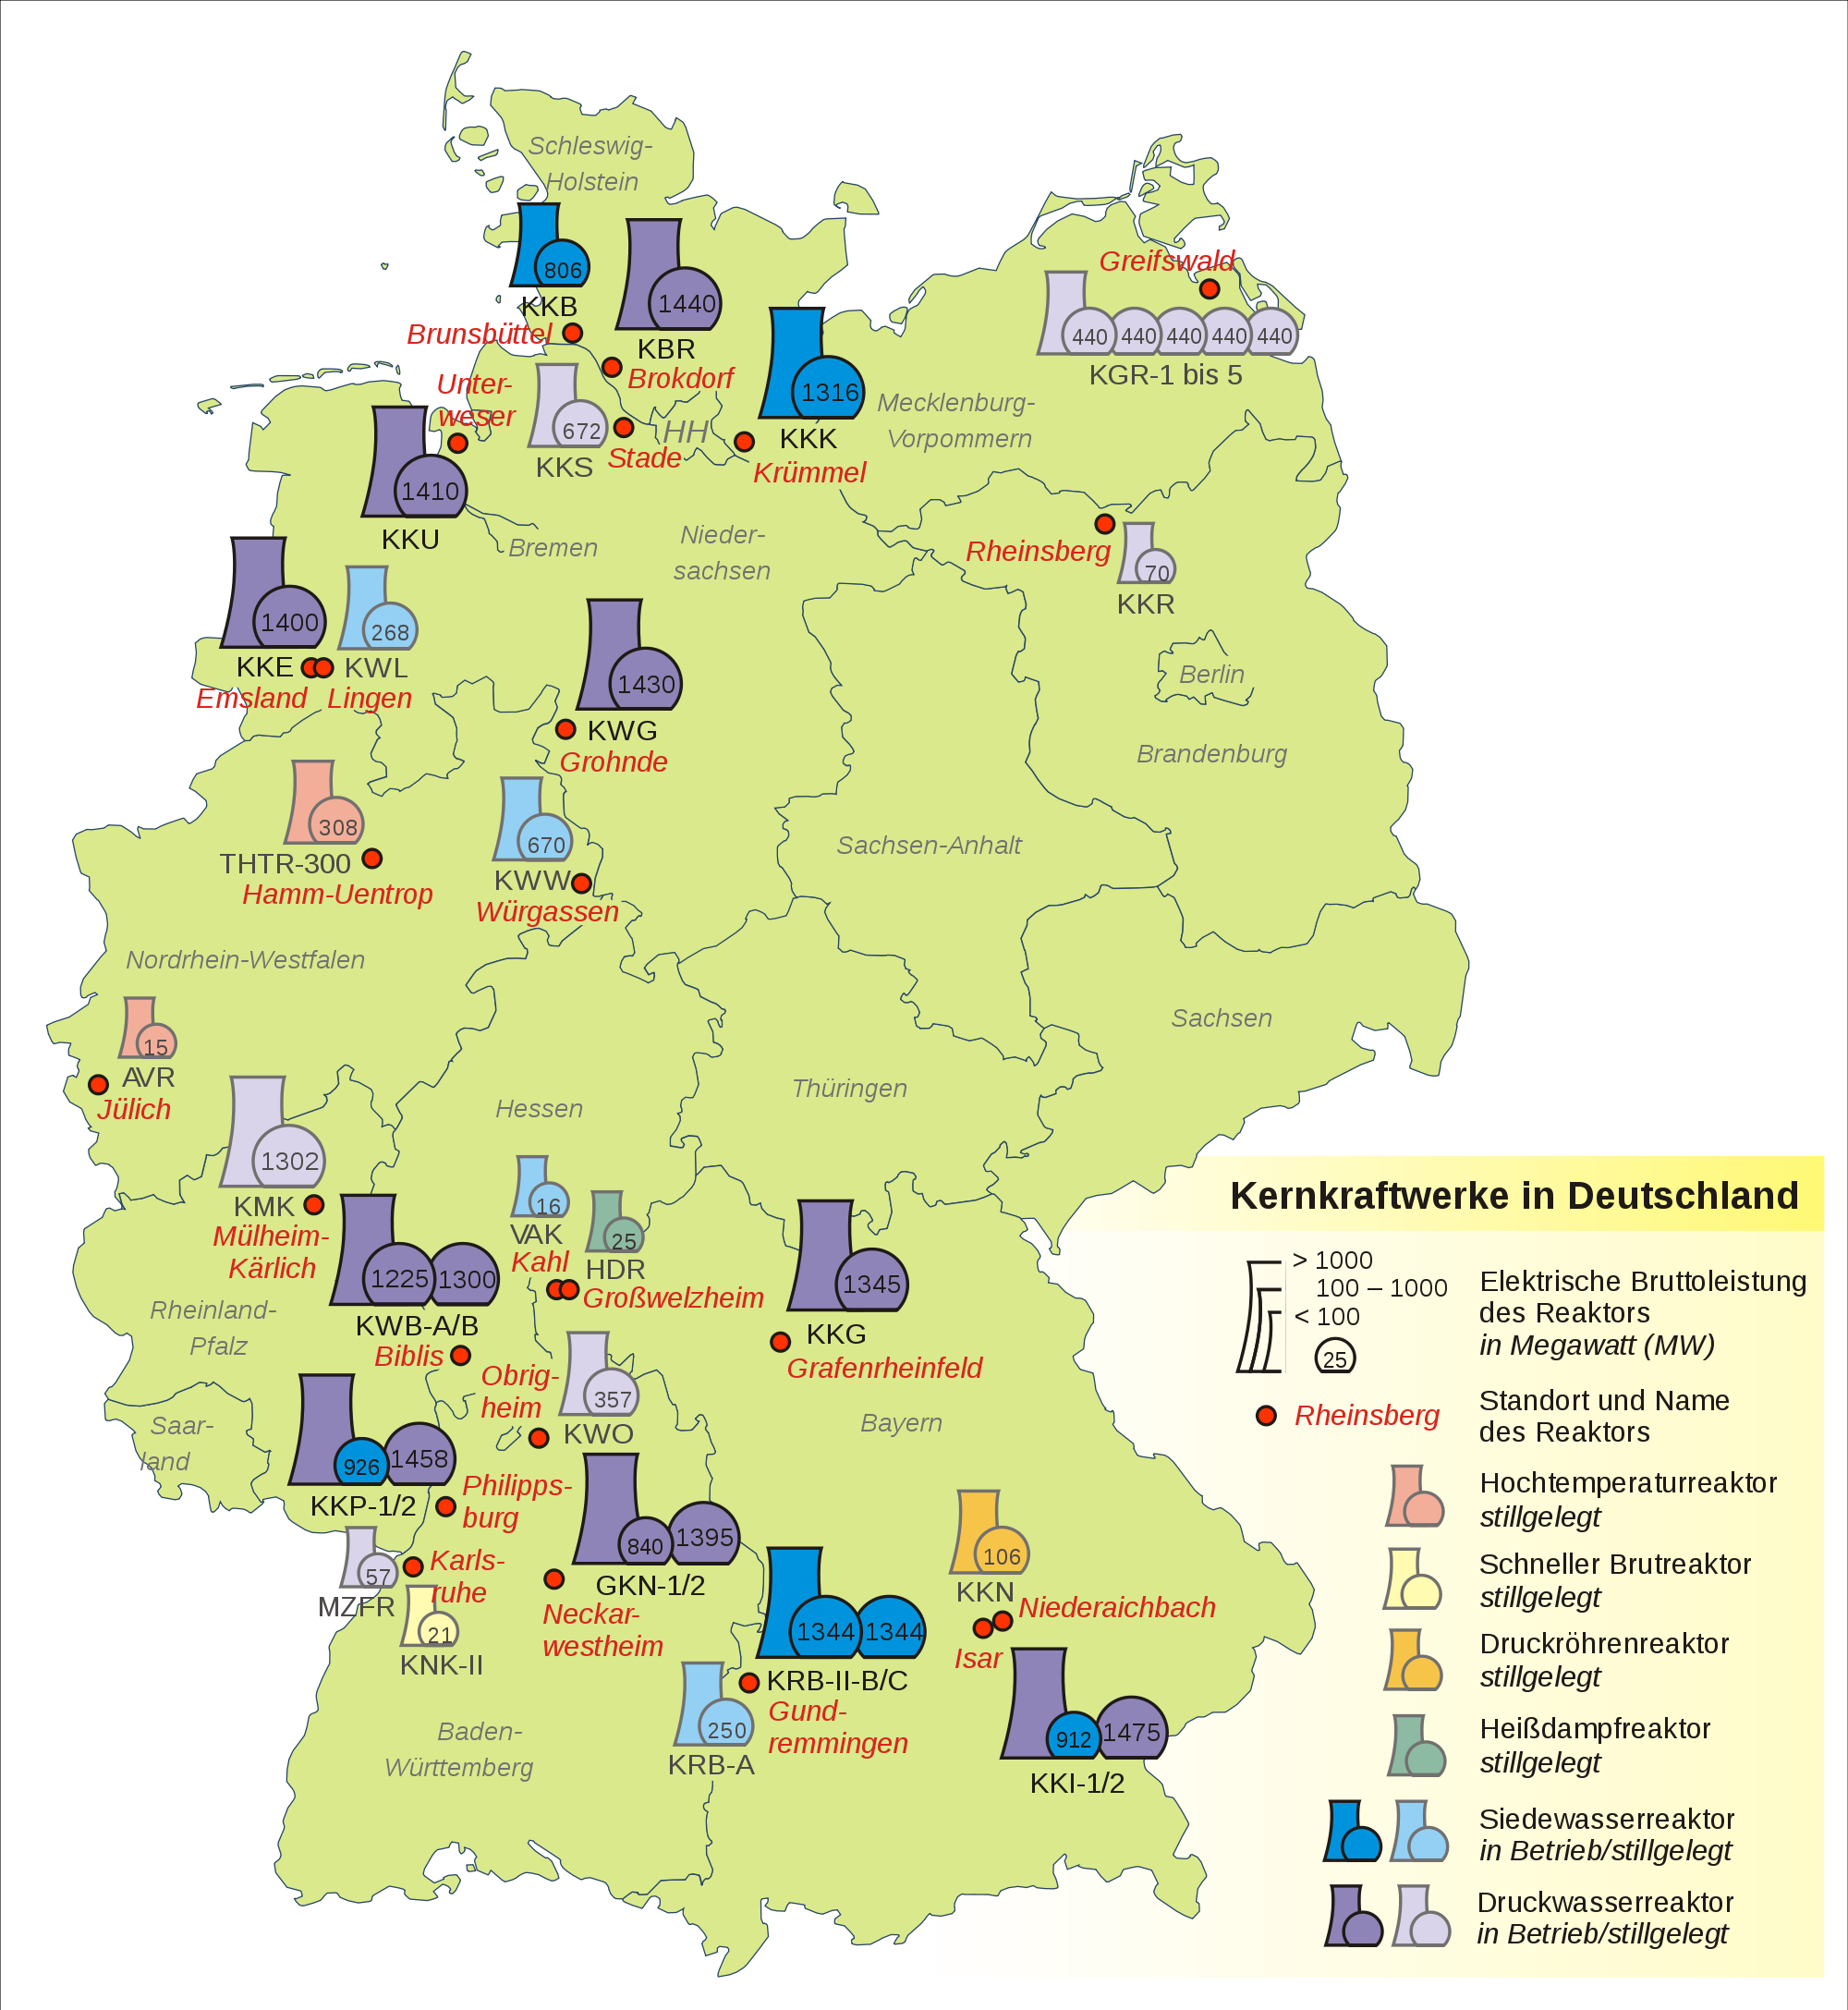 Nuclear power plants in Germany 2007